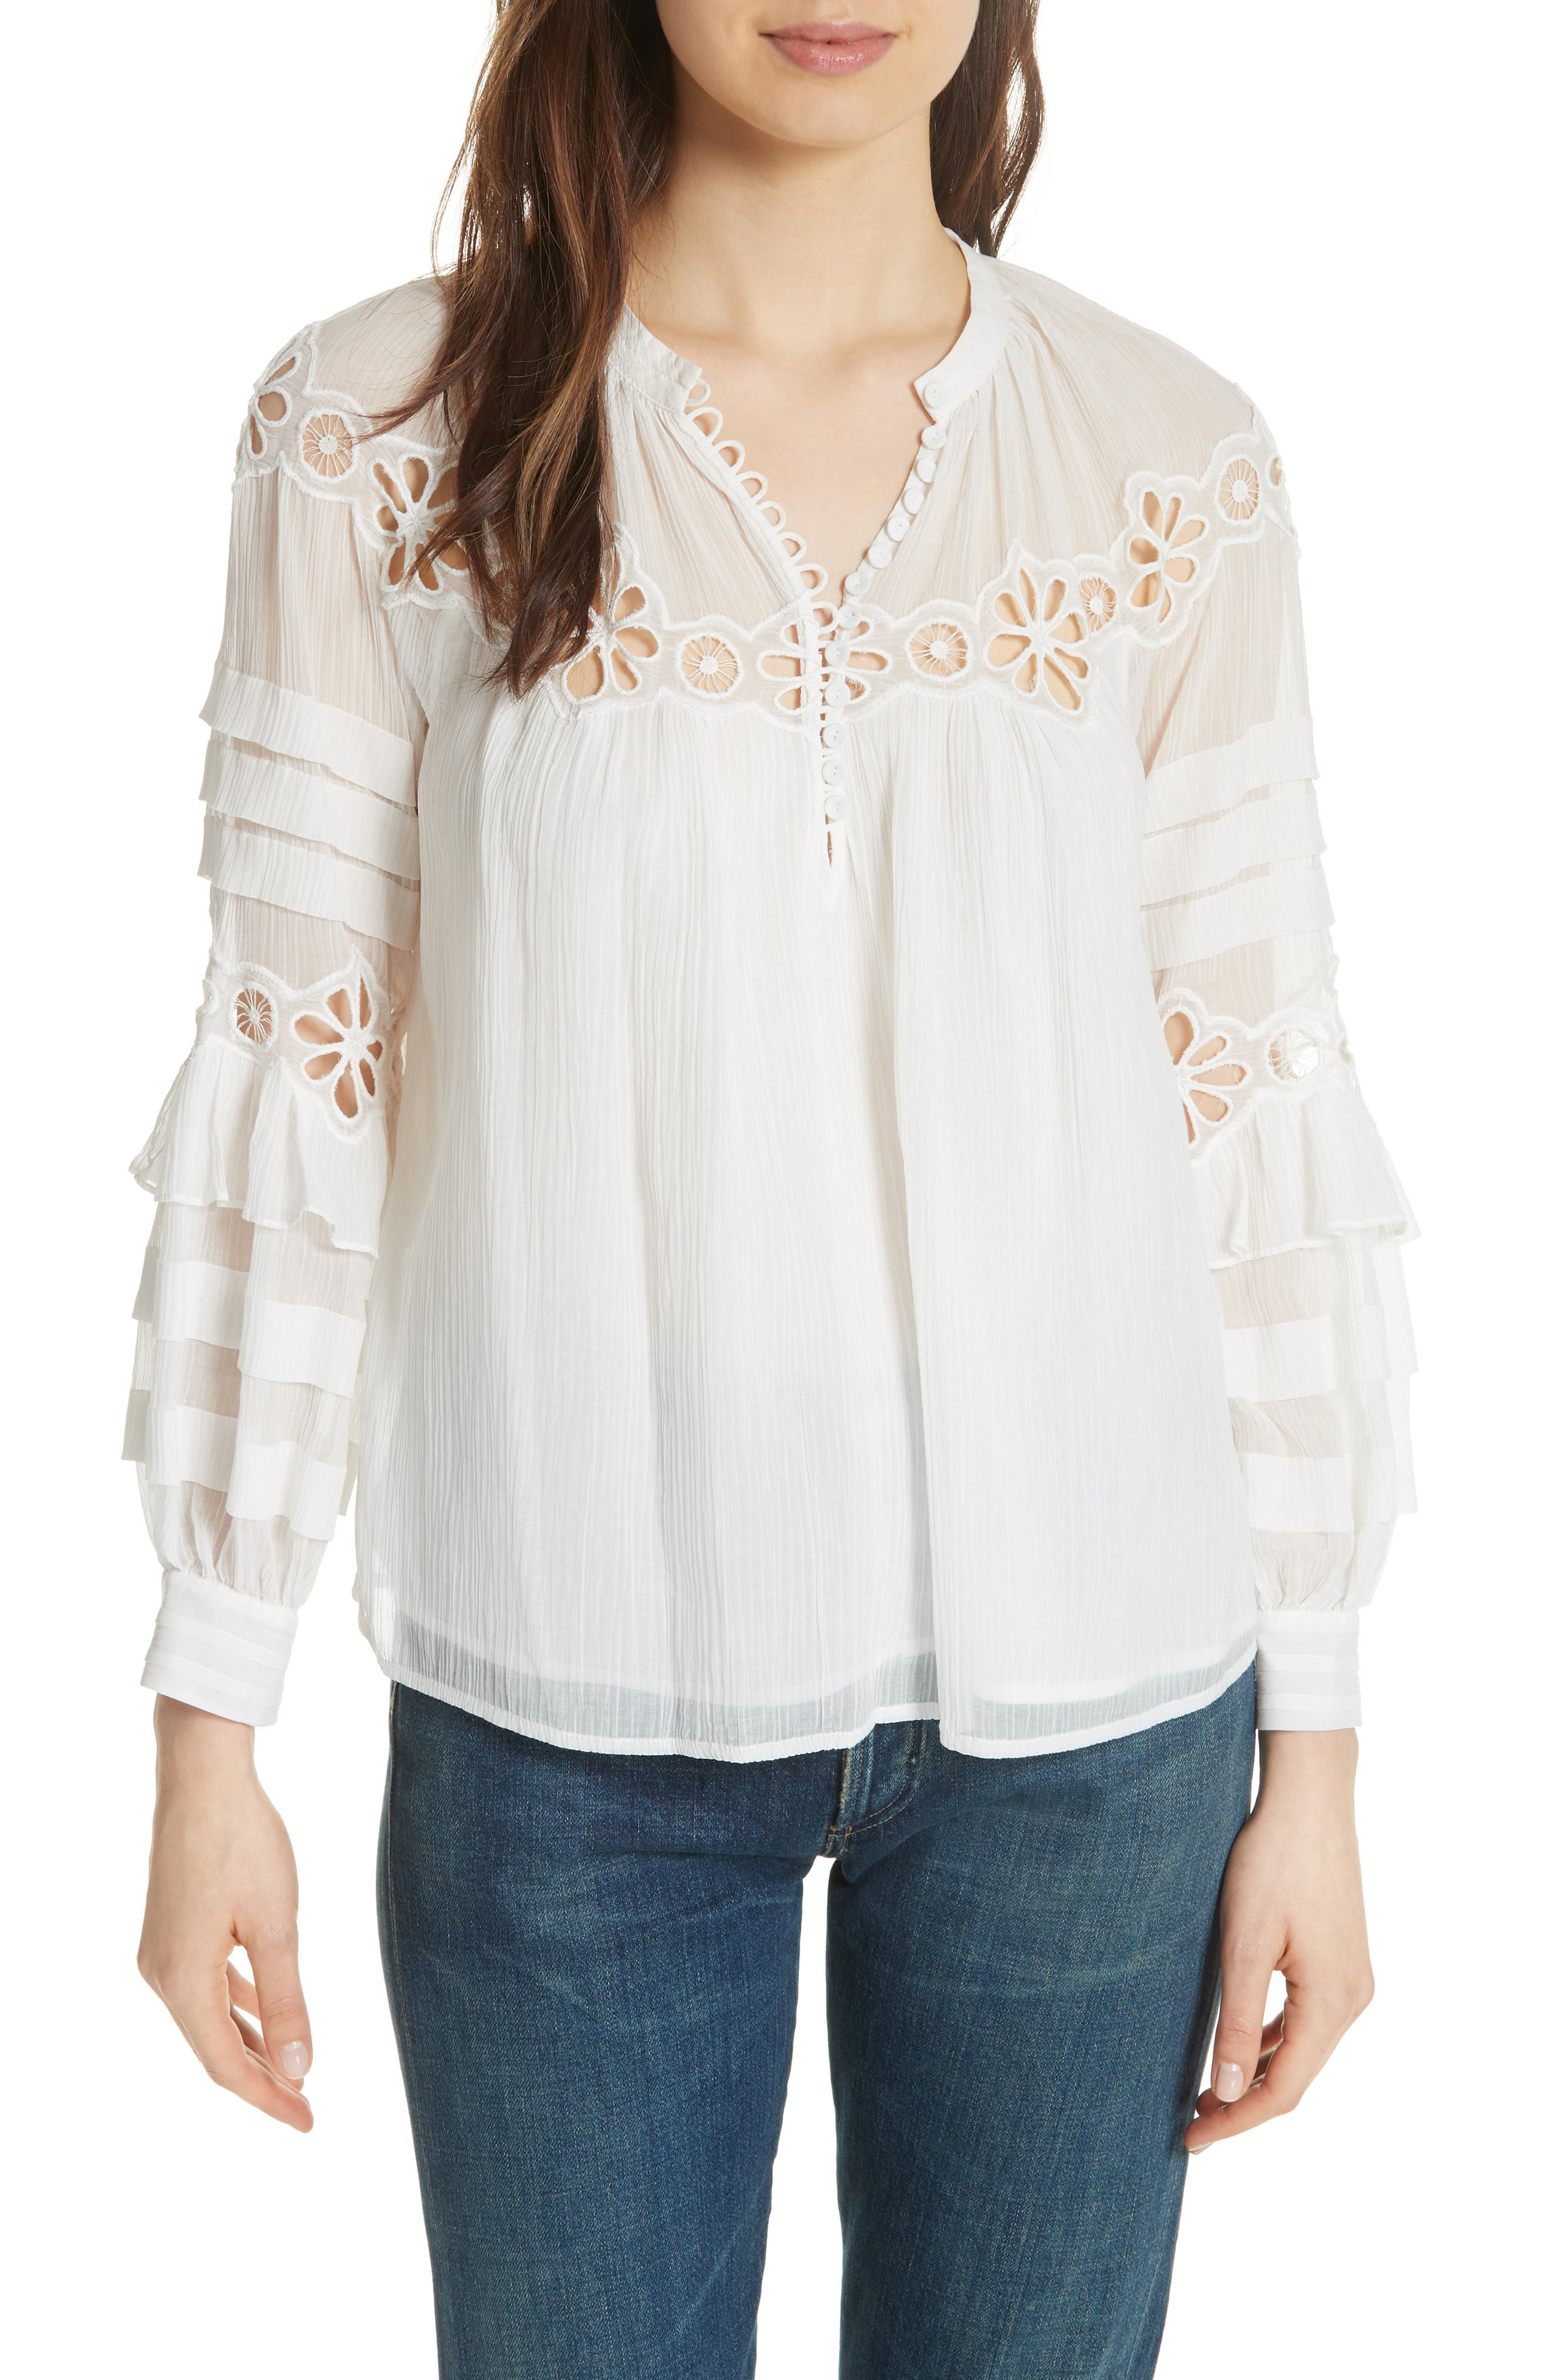 Alternate Image 1 Selected - Rebecca Taylor Pinwheel Eyelet Top